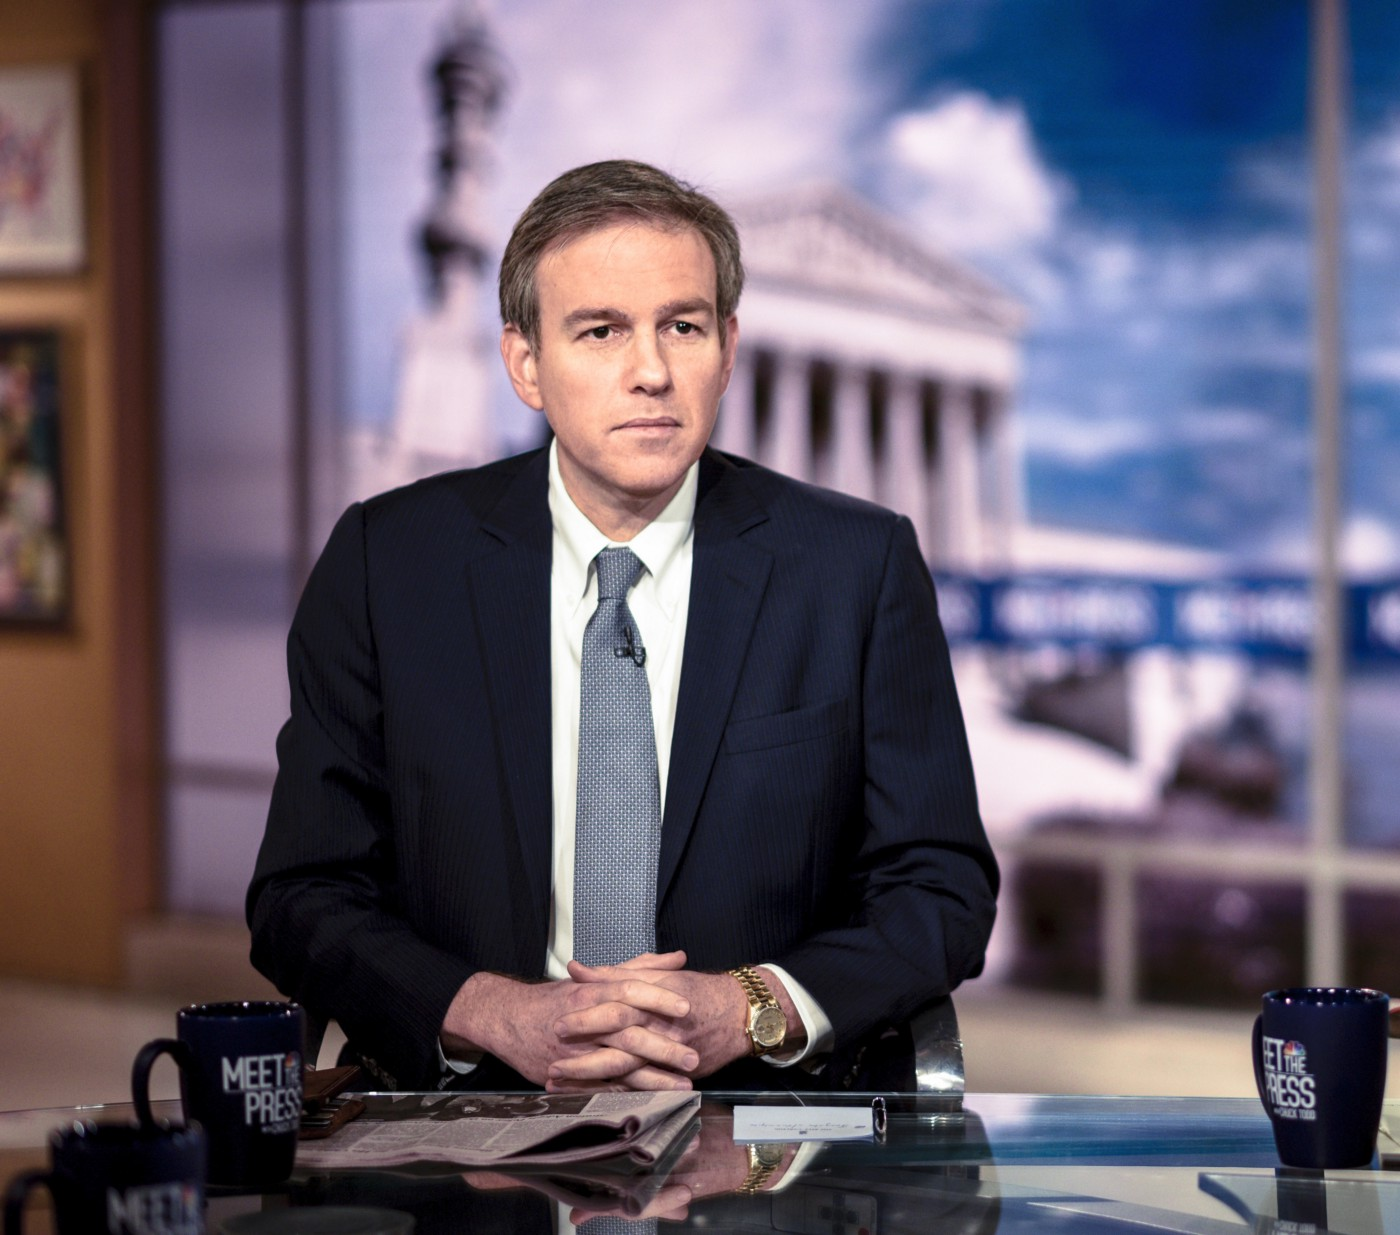 Bret Stephens appears on Meet the Press.